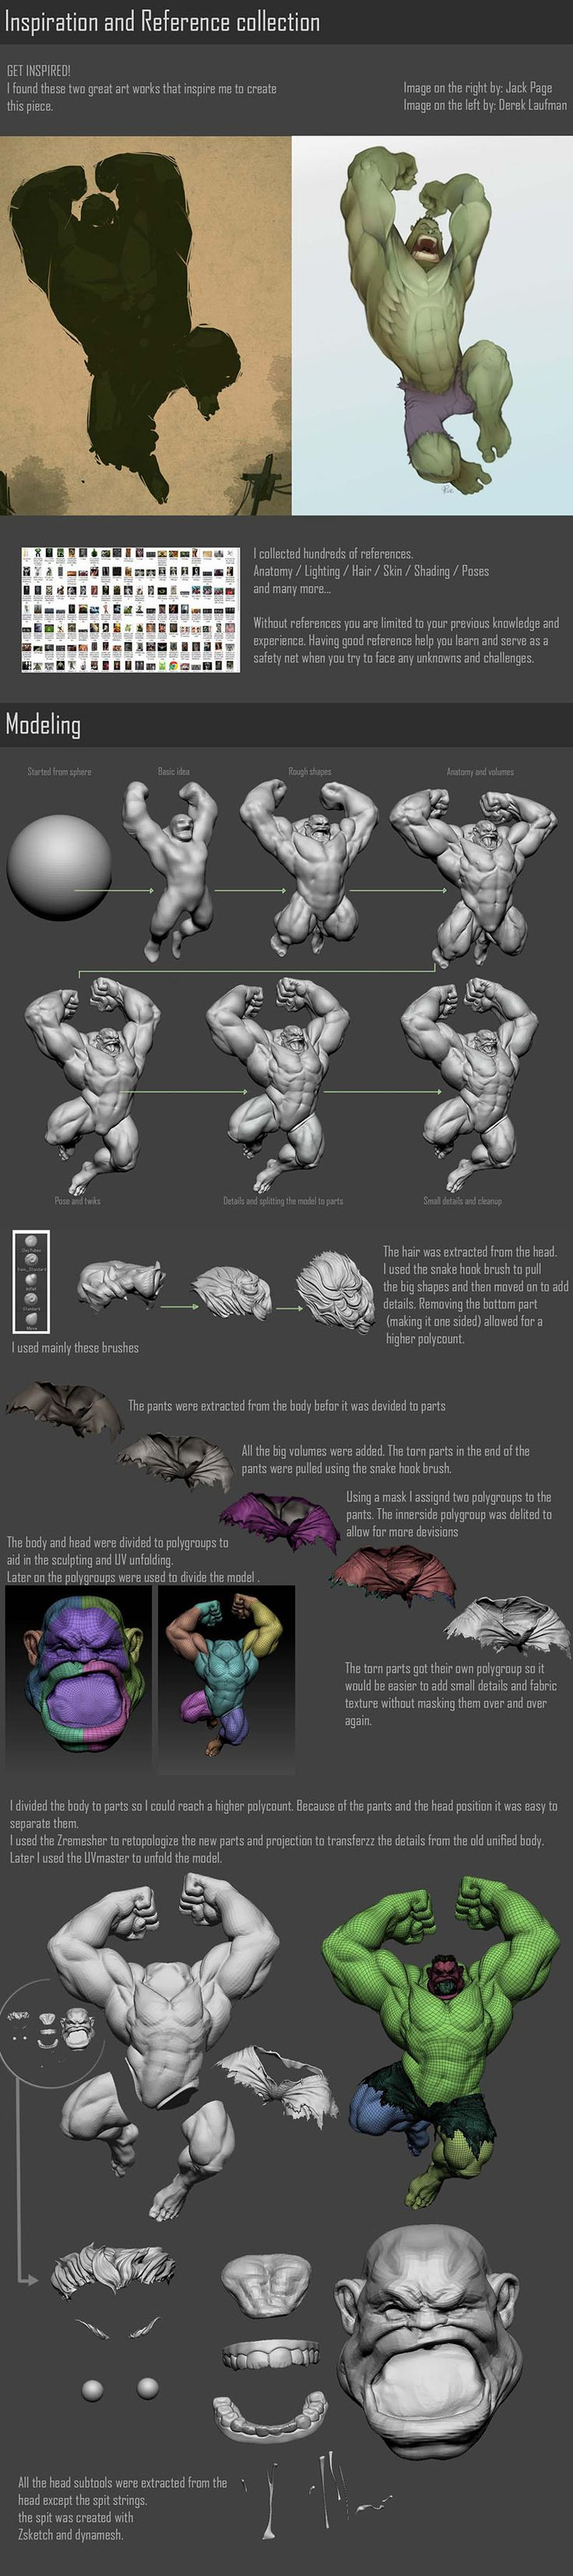 http://www.zbrushcentral.com/showthread.php?186527-Smashing-hulk!-(step-by-step-added-Pg-3)/page3